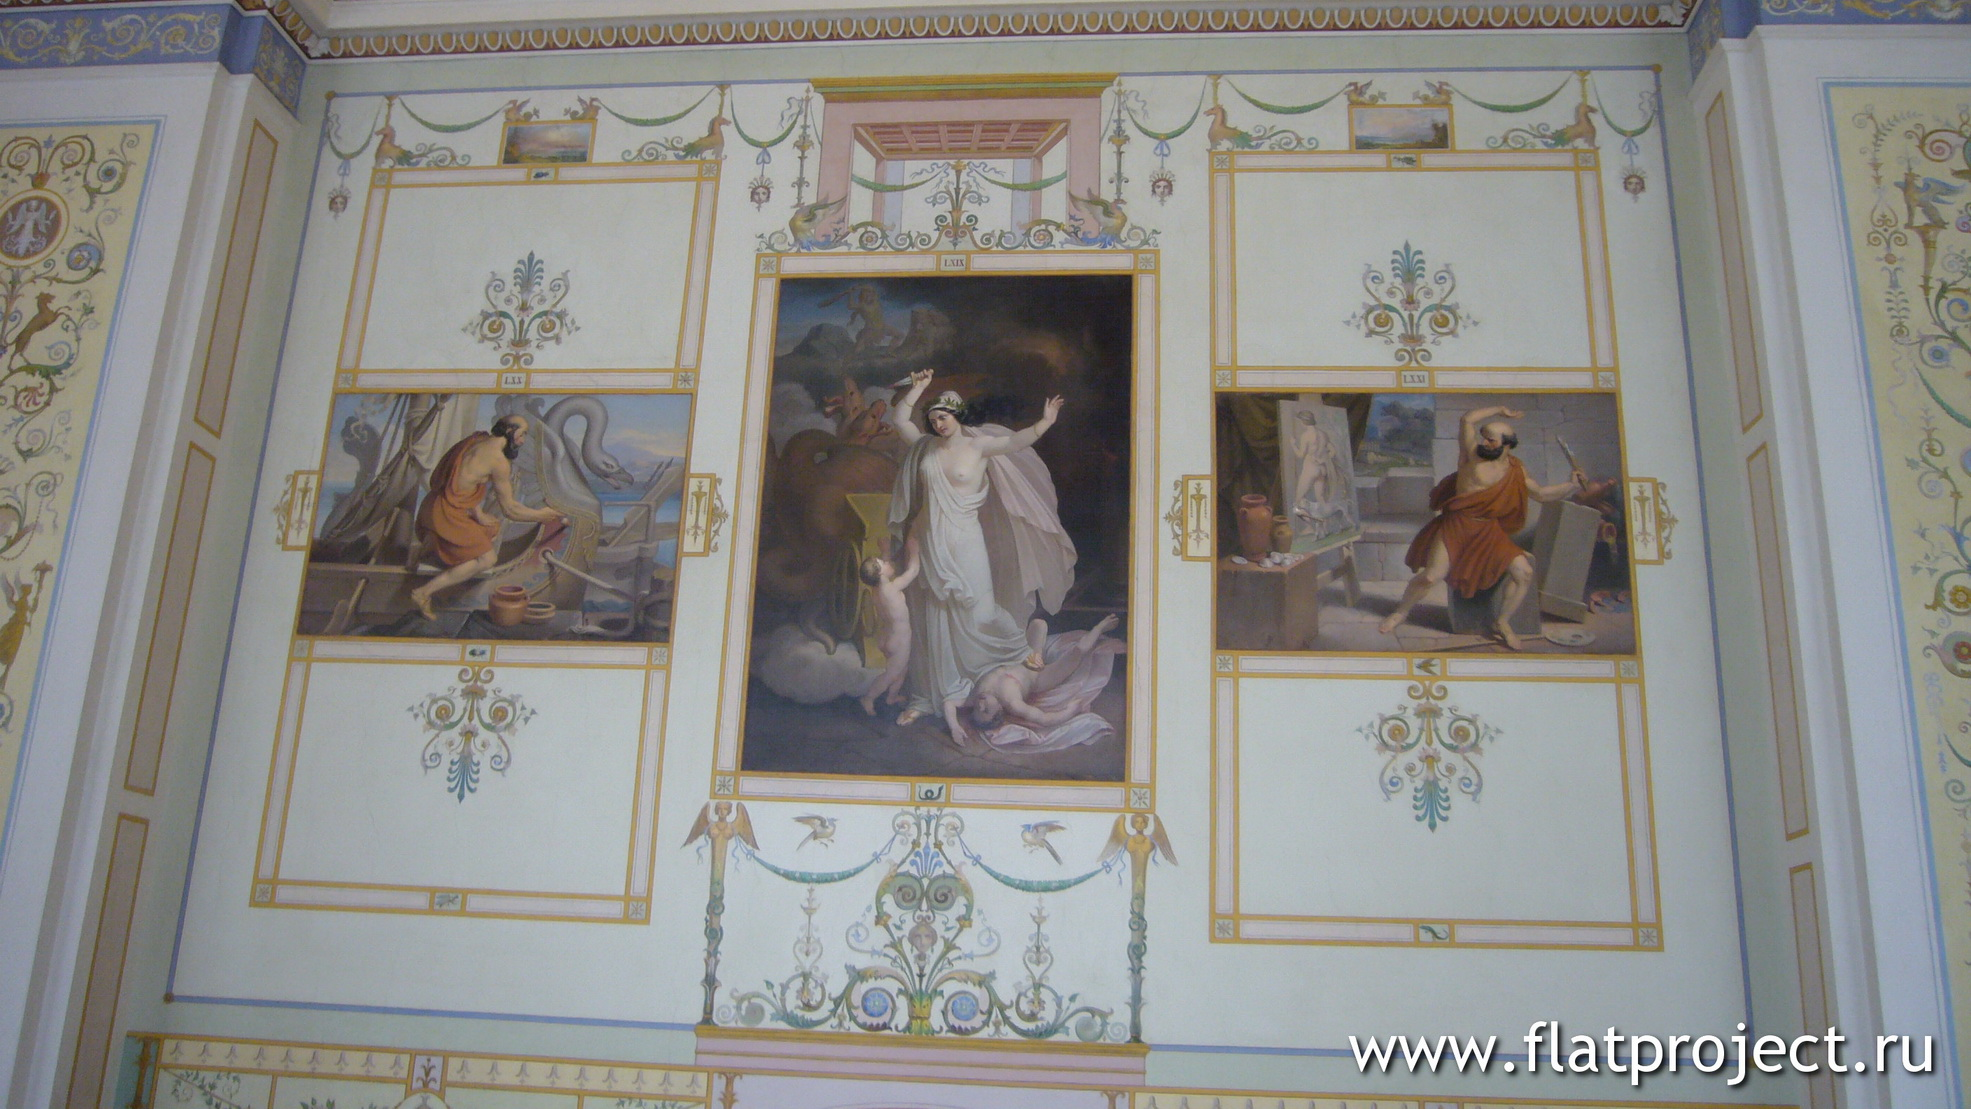 The State Hermitage museum interiors – photo 230